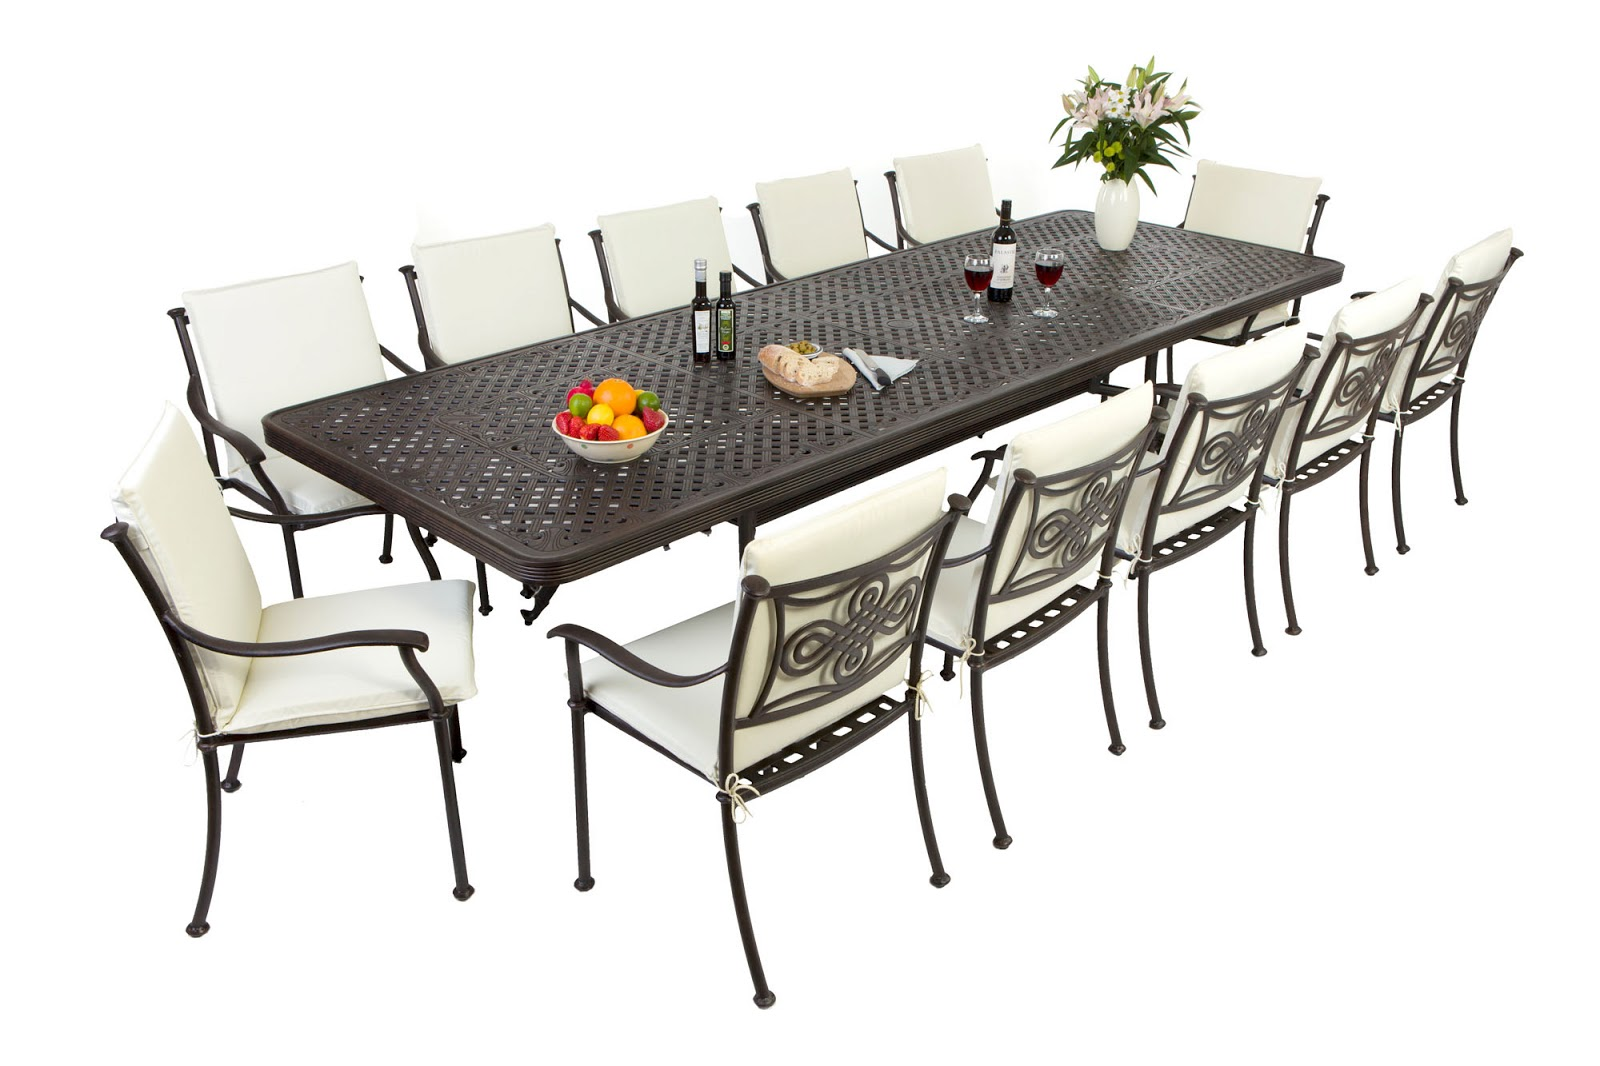 Outside Edge Garden Furniture Blog The Biggest Extending Cast Aluminium Garden Furniture Set In